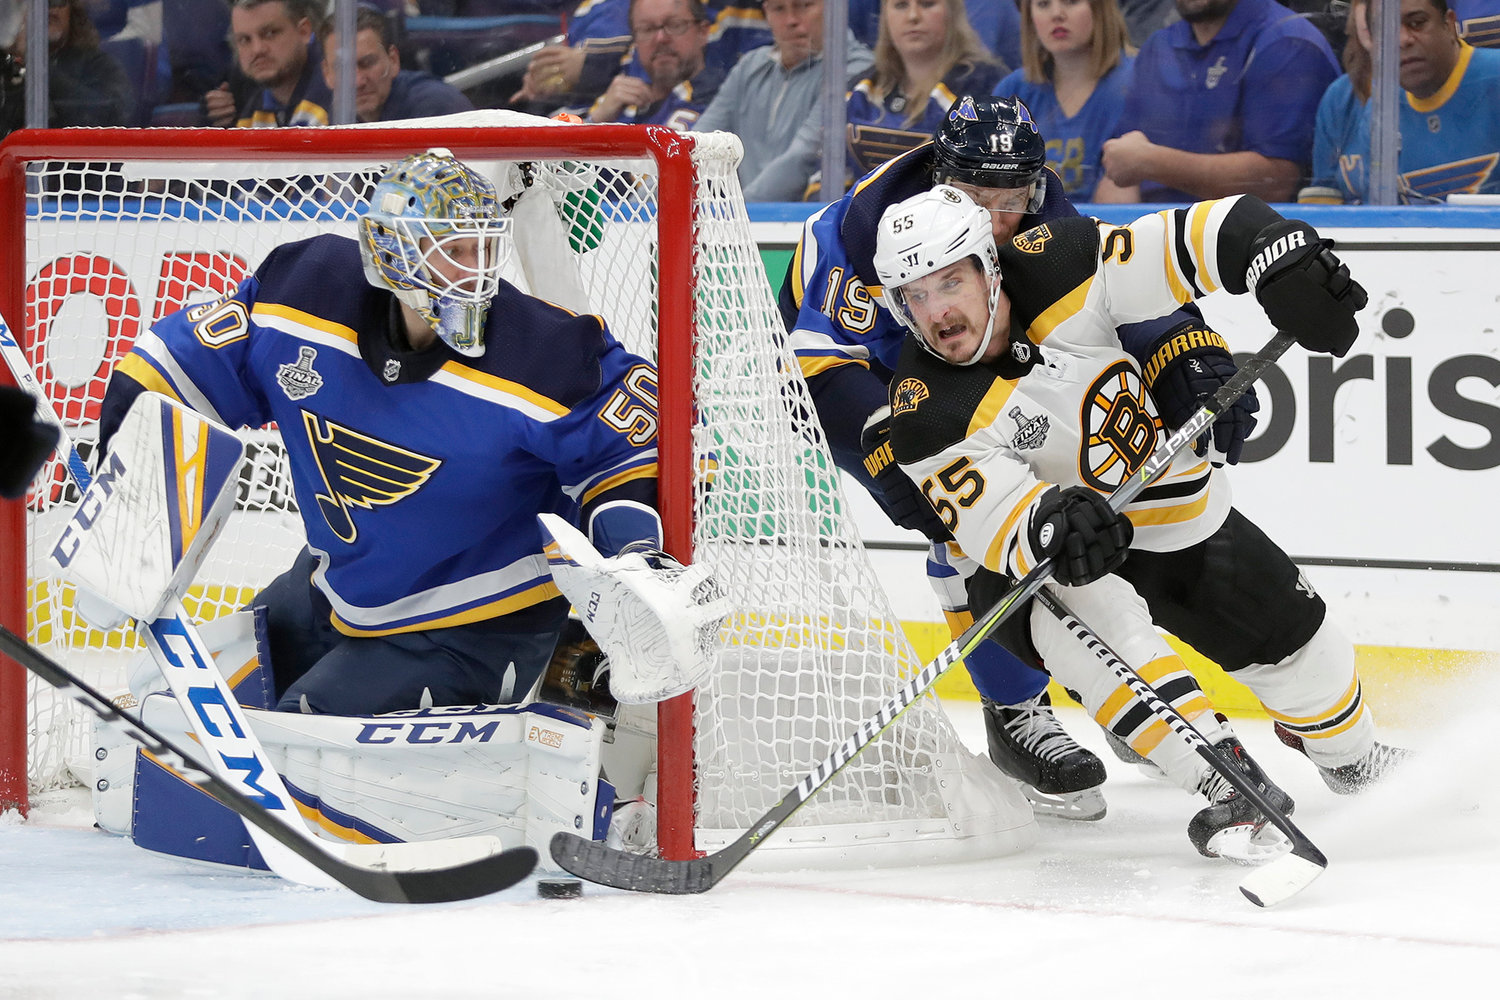 Boston Bruins center Noel Acciari (55) rounds the net against St. Louis Blues goaltender Jordan Binnington (50) during the third period of Game 6 of the NHL hockey Stanley Cup Final Sunday in St. Louis. The Bruins won 5-1 to  the series 3-3.